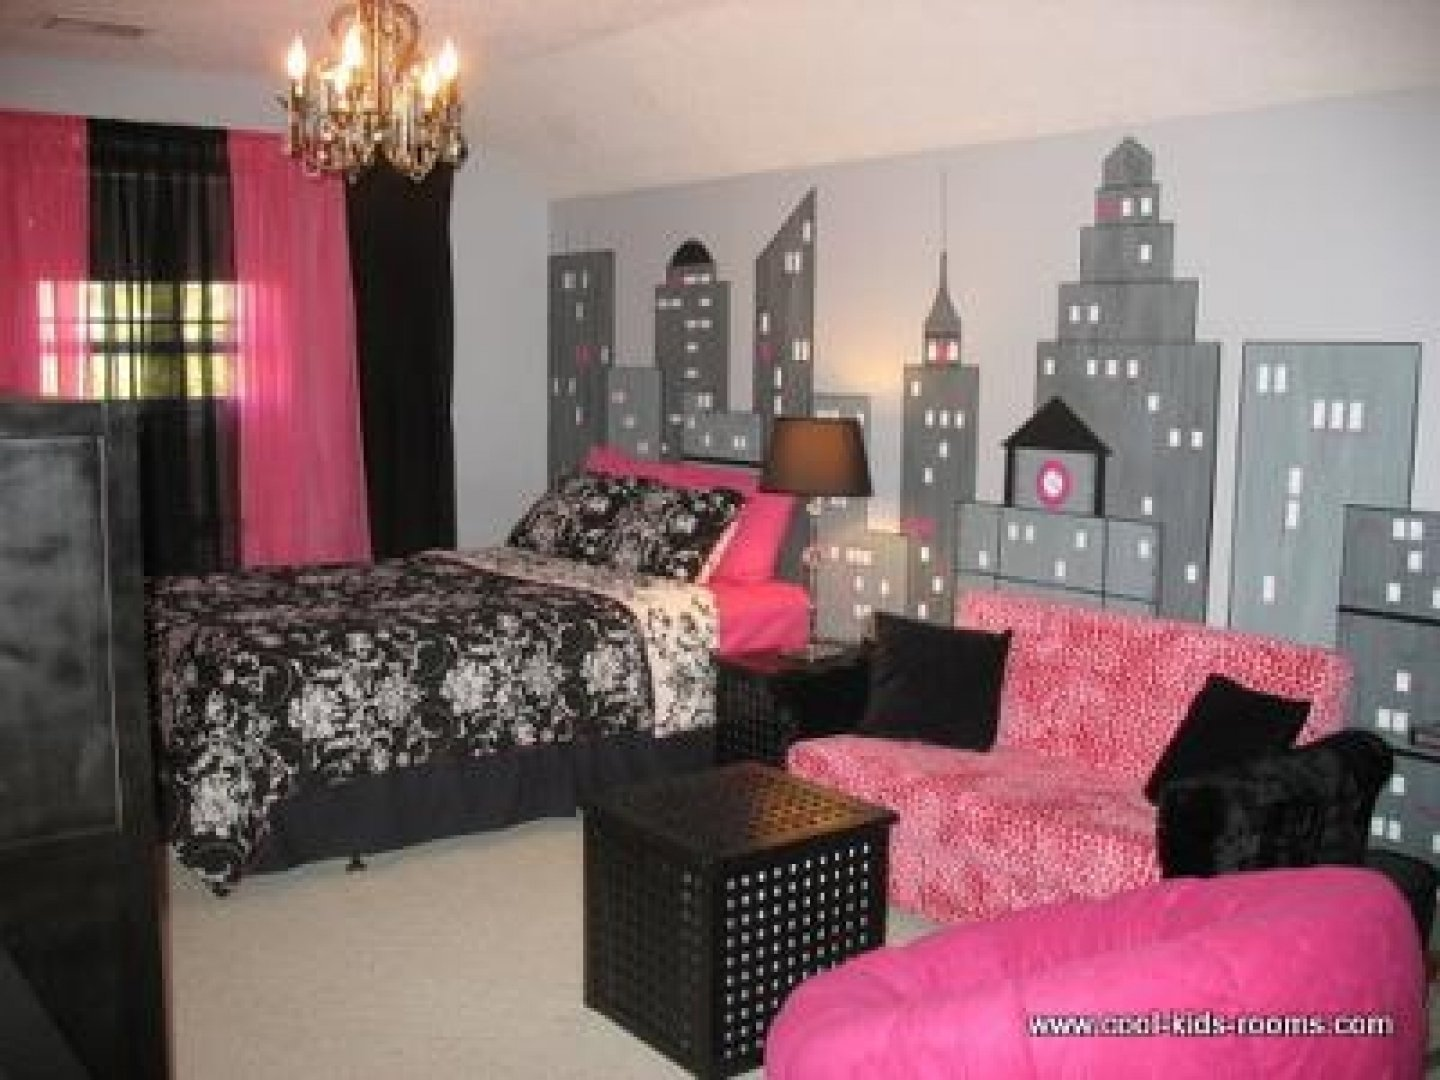 10 Lovable Pink And Black Bedroom Ideas white pink and black bedroom ideas e280a2 white bedroom ideas 2020